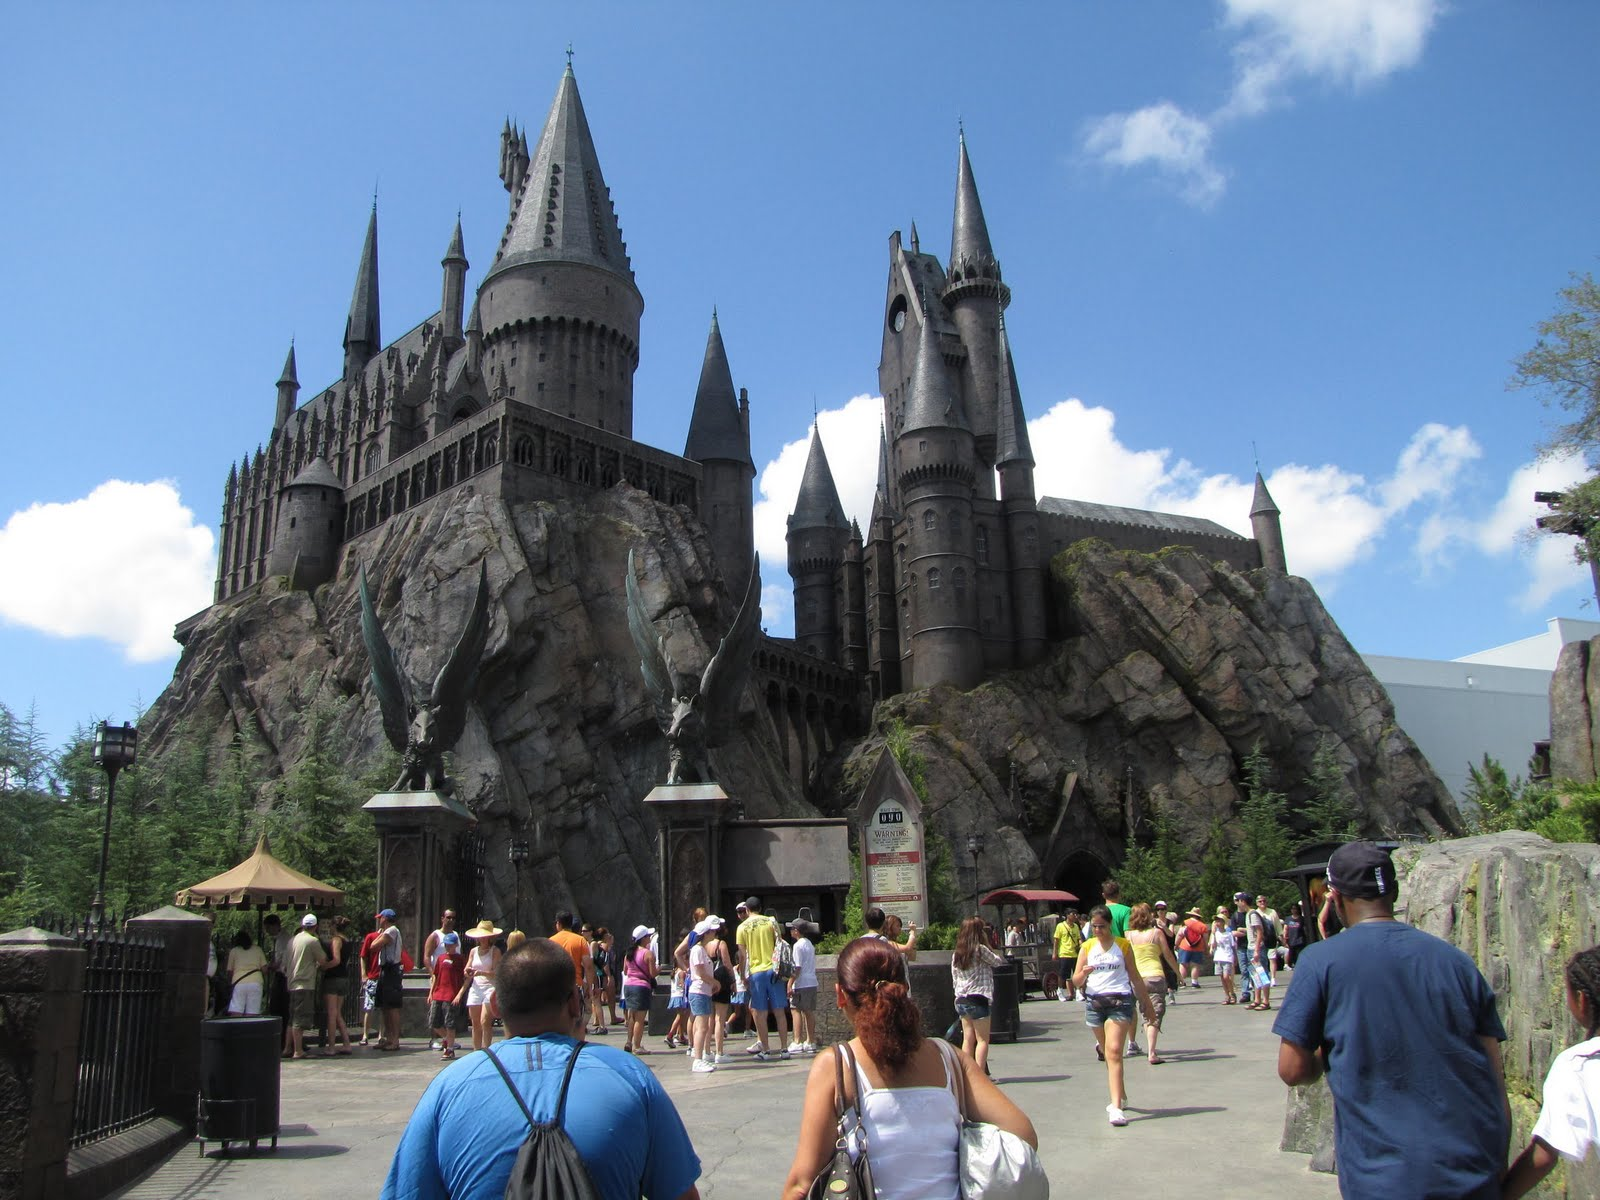 Resultado de imagen para The Wizarding World of Harry Potter